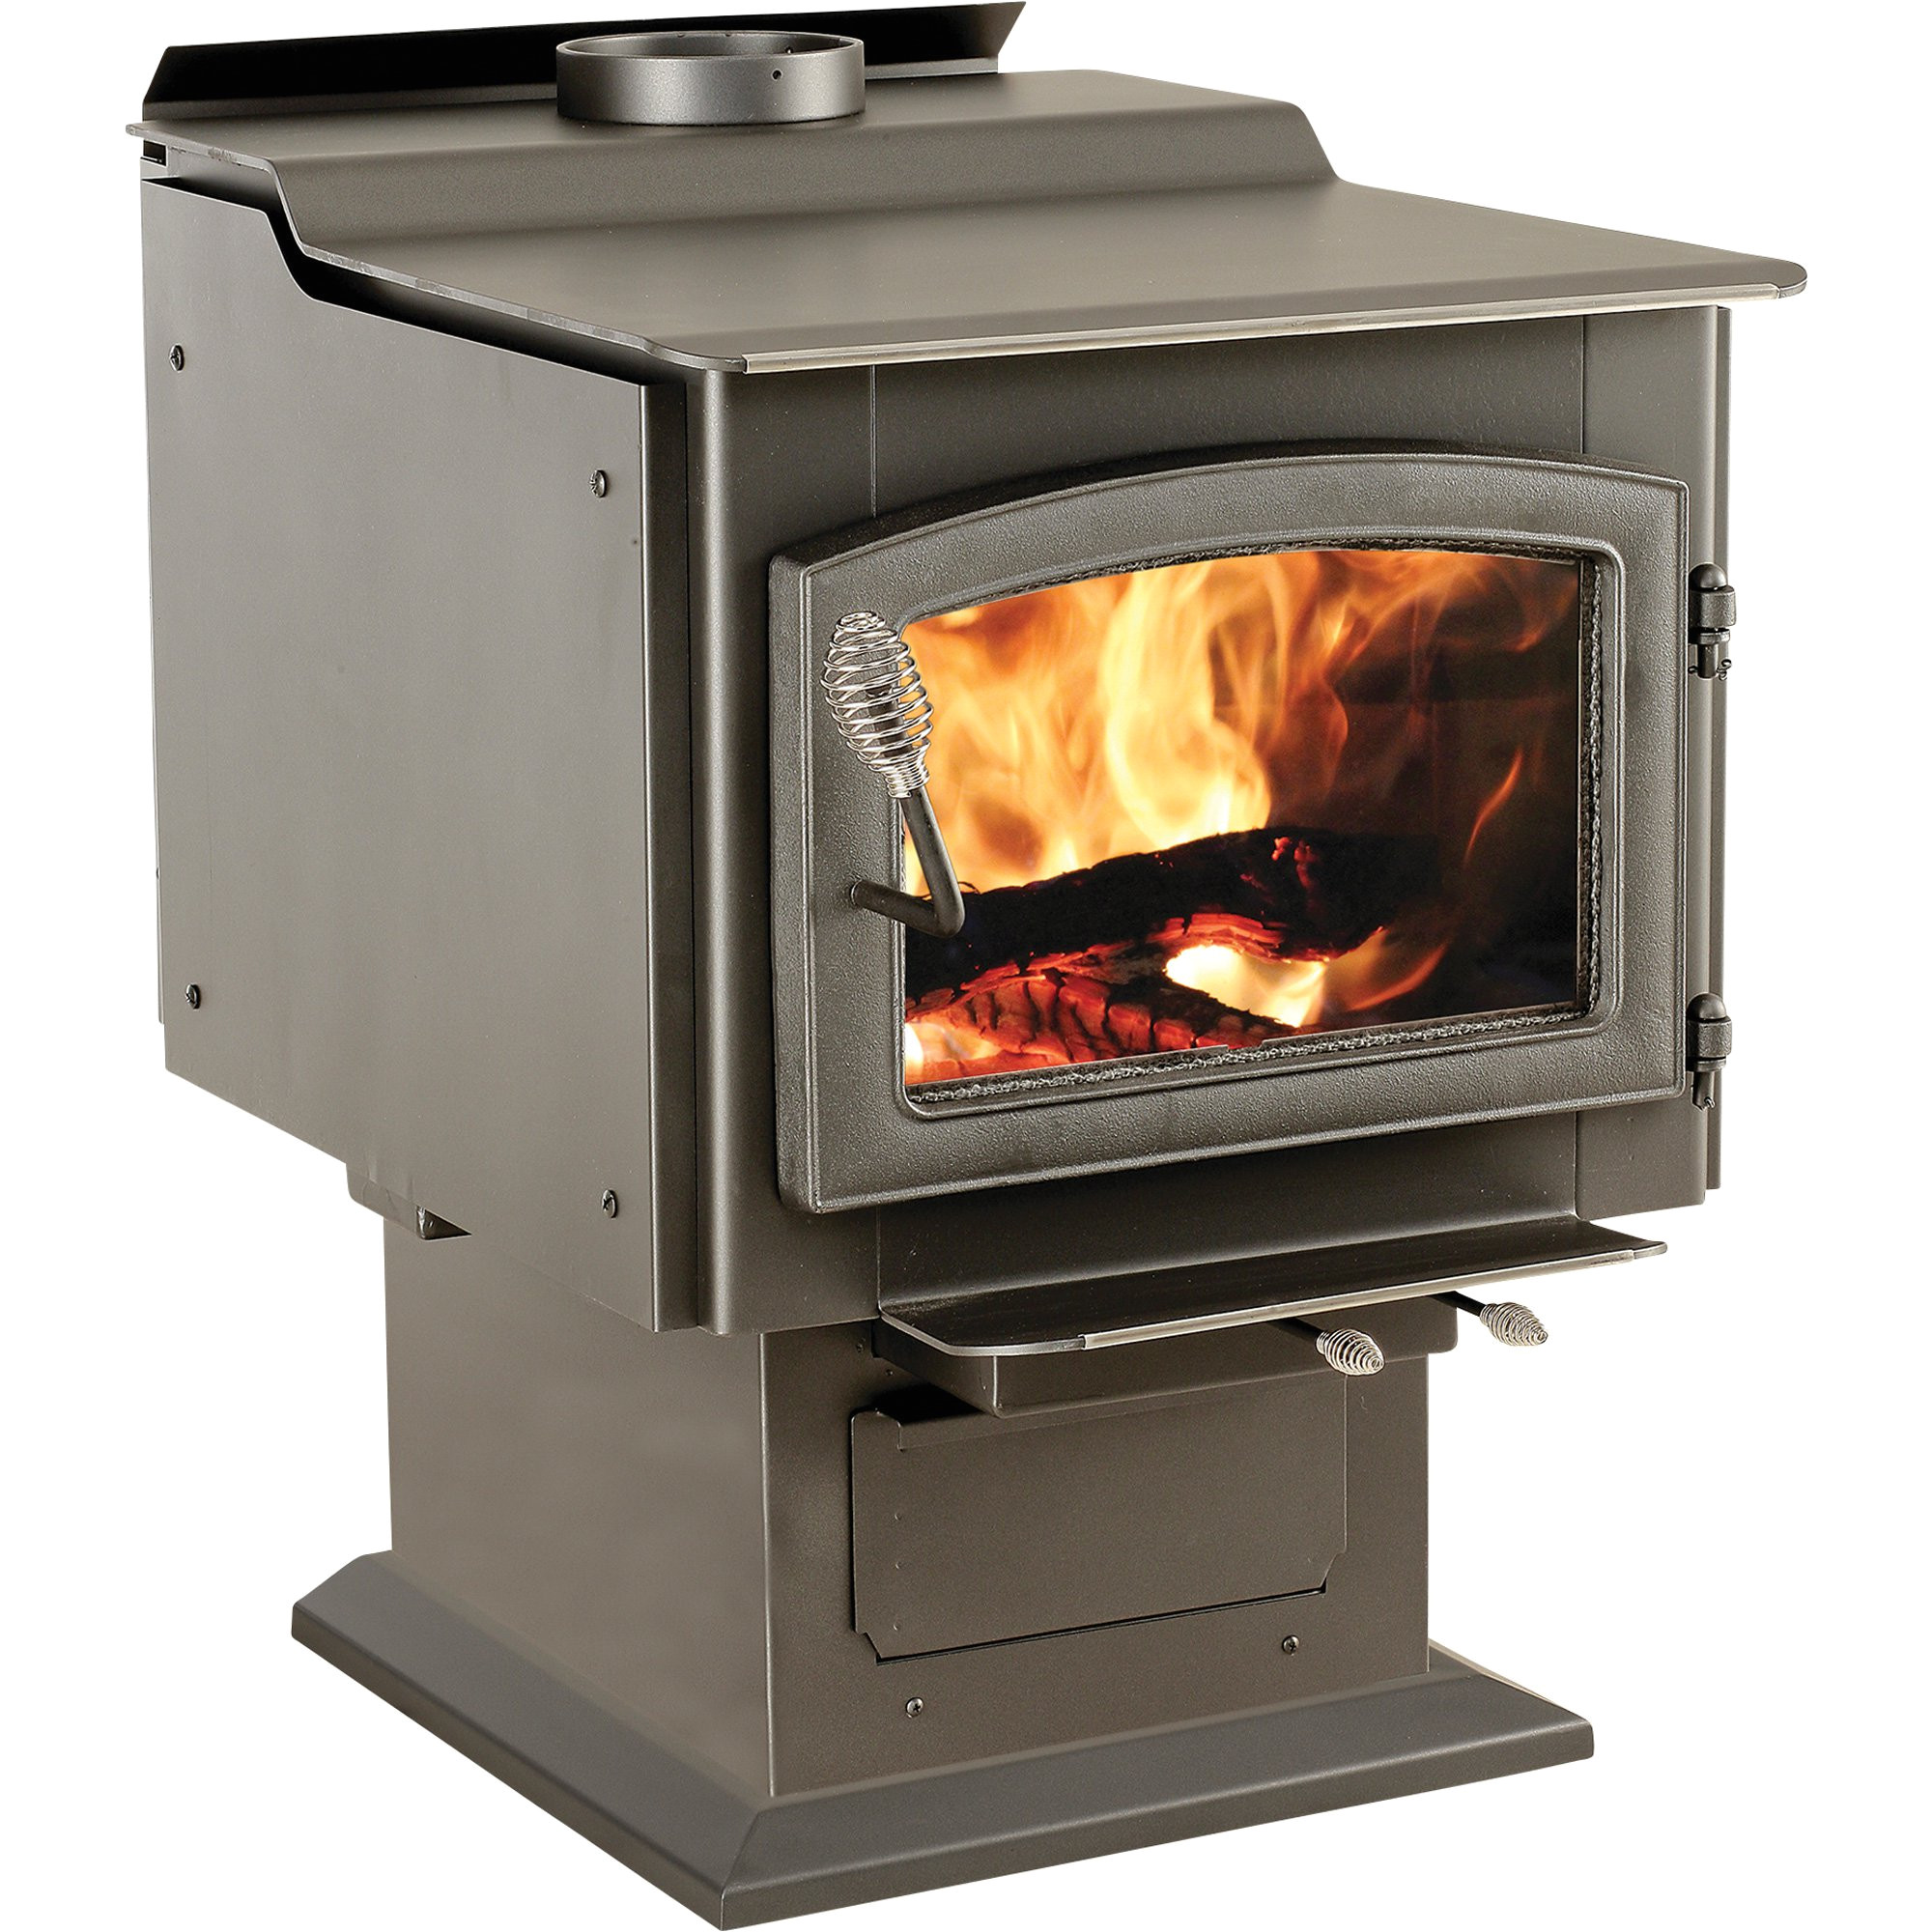 2 top seller vogelzang ponderosa high efficiency wood stove 152 000 btu epa certified model